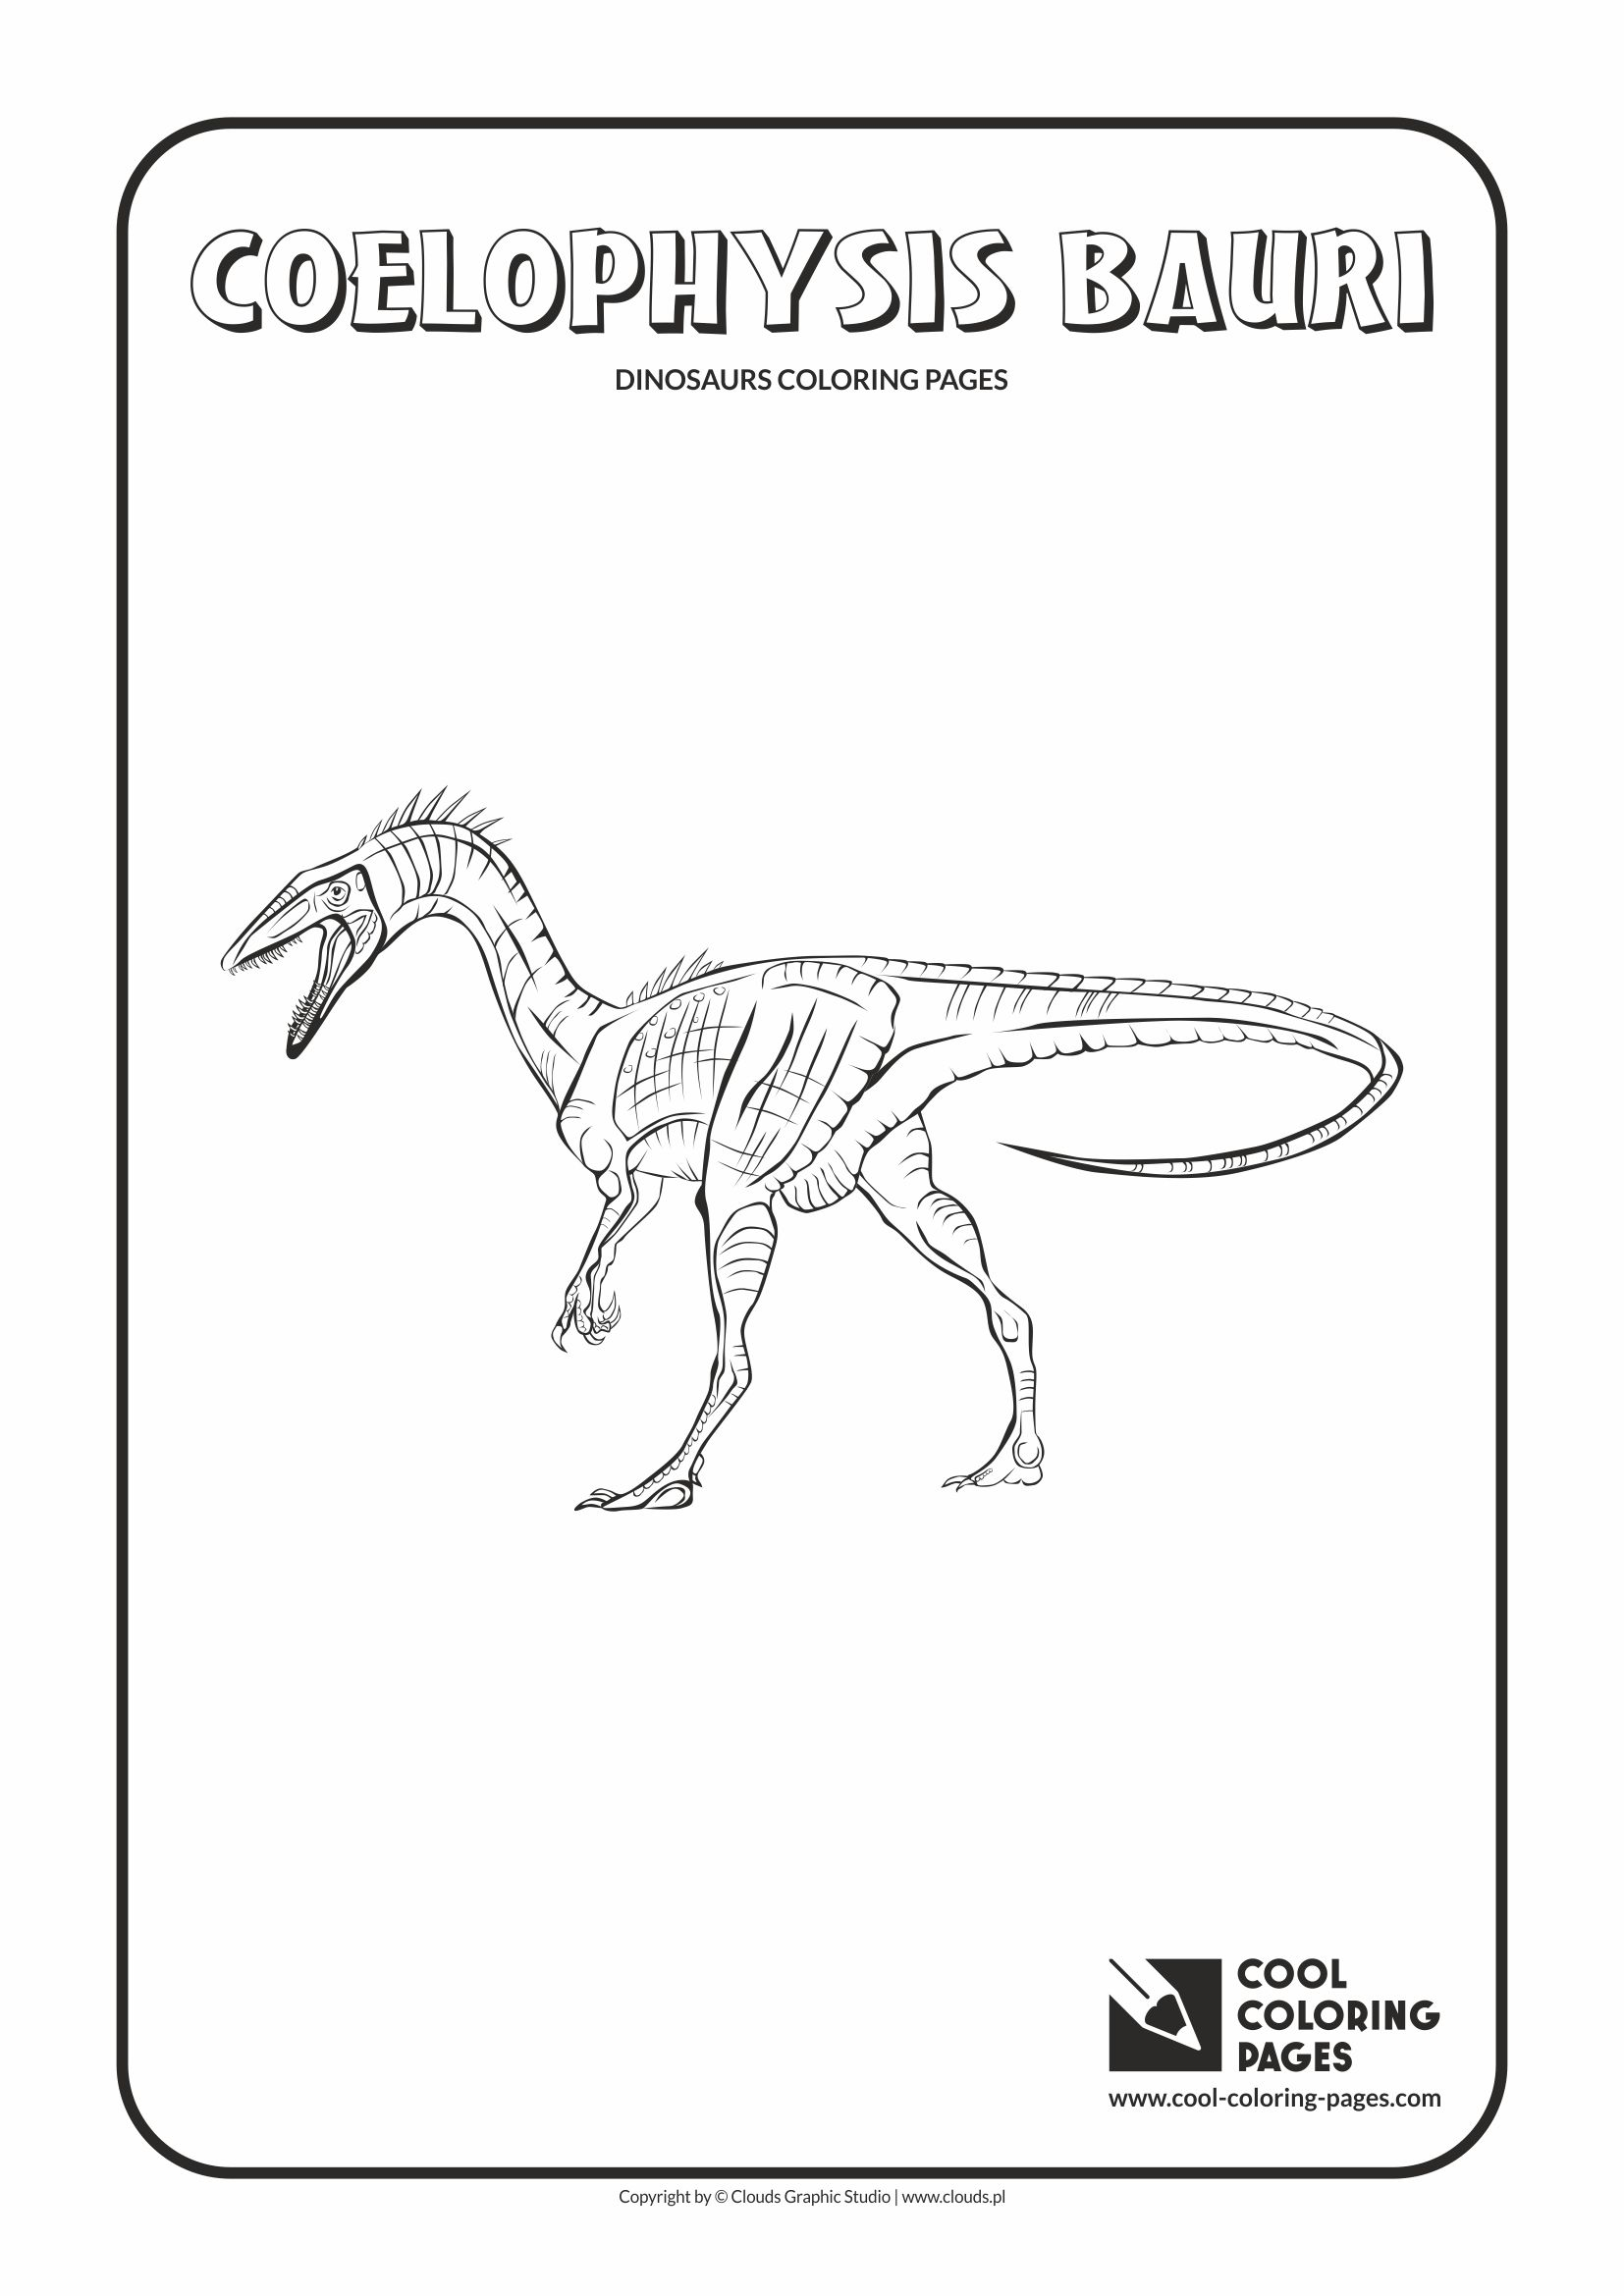 Cool Coloring Pages Dinosaurs coloring